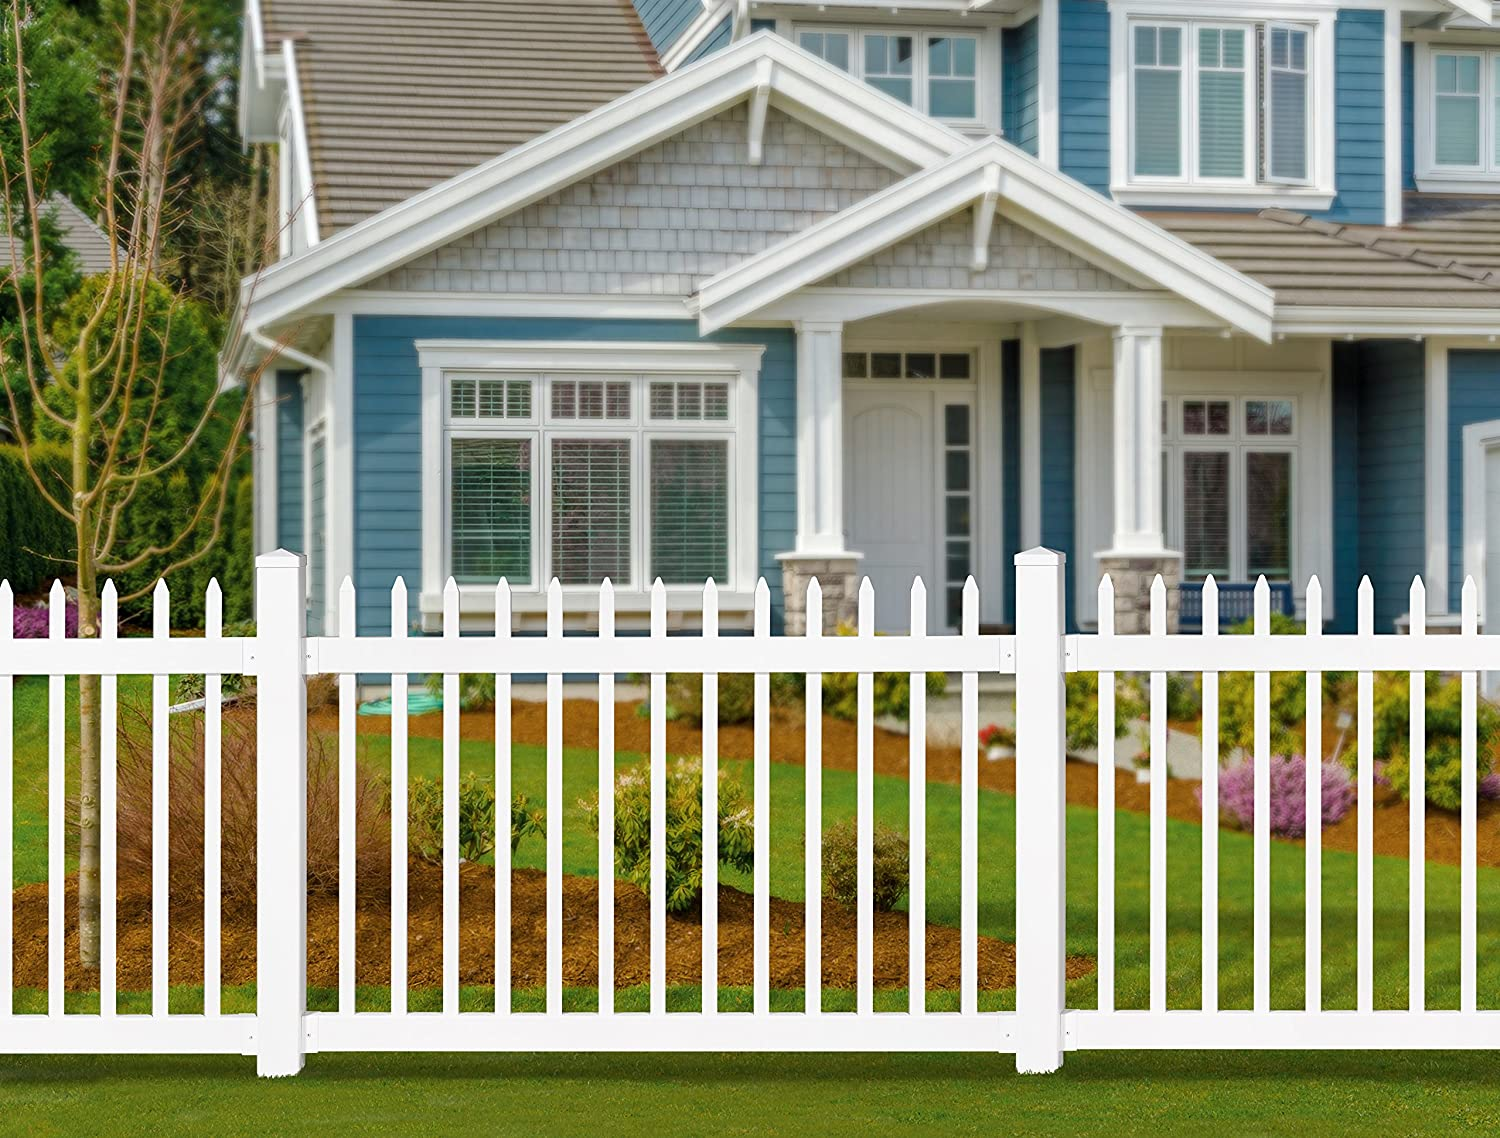 Beautiful Amazon.com : WamBam No Dig BL19101 No Dig Permanent Nantucket Picket Vinyl  Fence W/Post U0026 No Dig Steel Pipe Anchor Kit, 4u0027 X 6u0027, White : Garden U0026  Outdoor